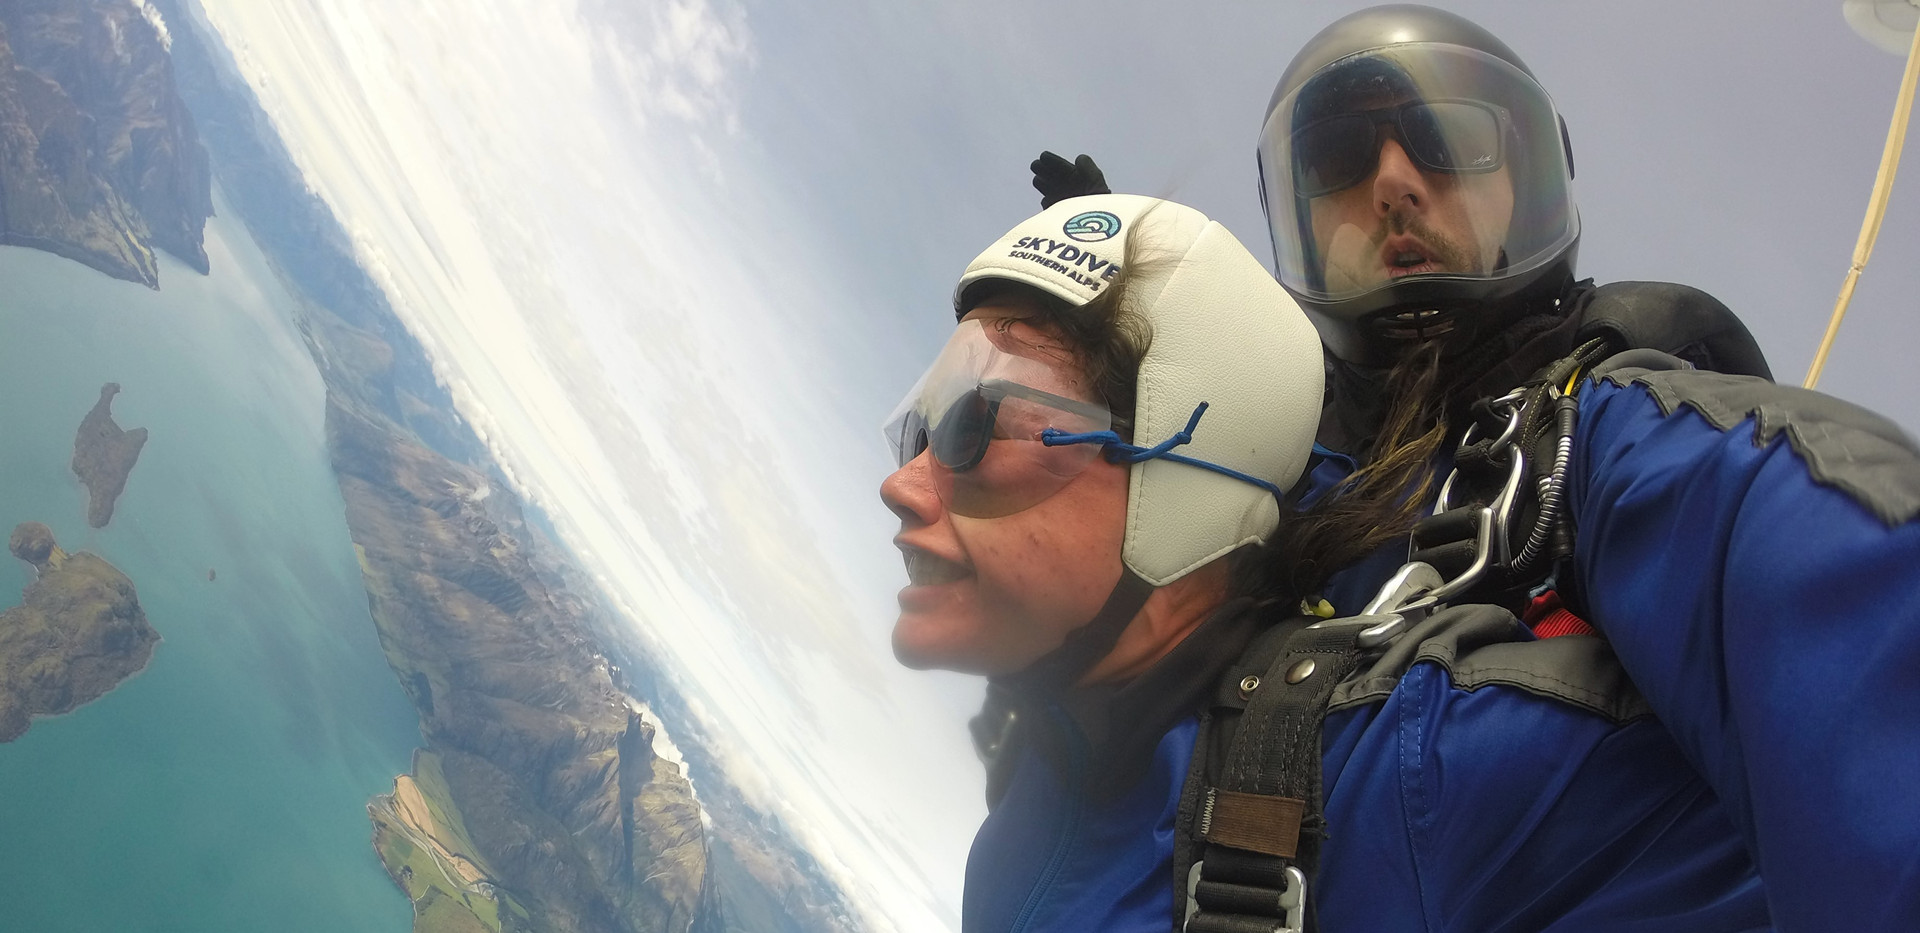 2019 skydiving Glenorchy New Zealand Reg